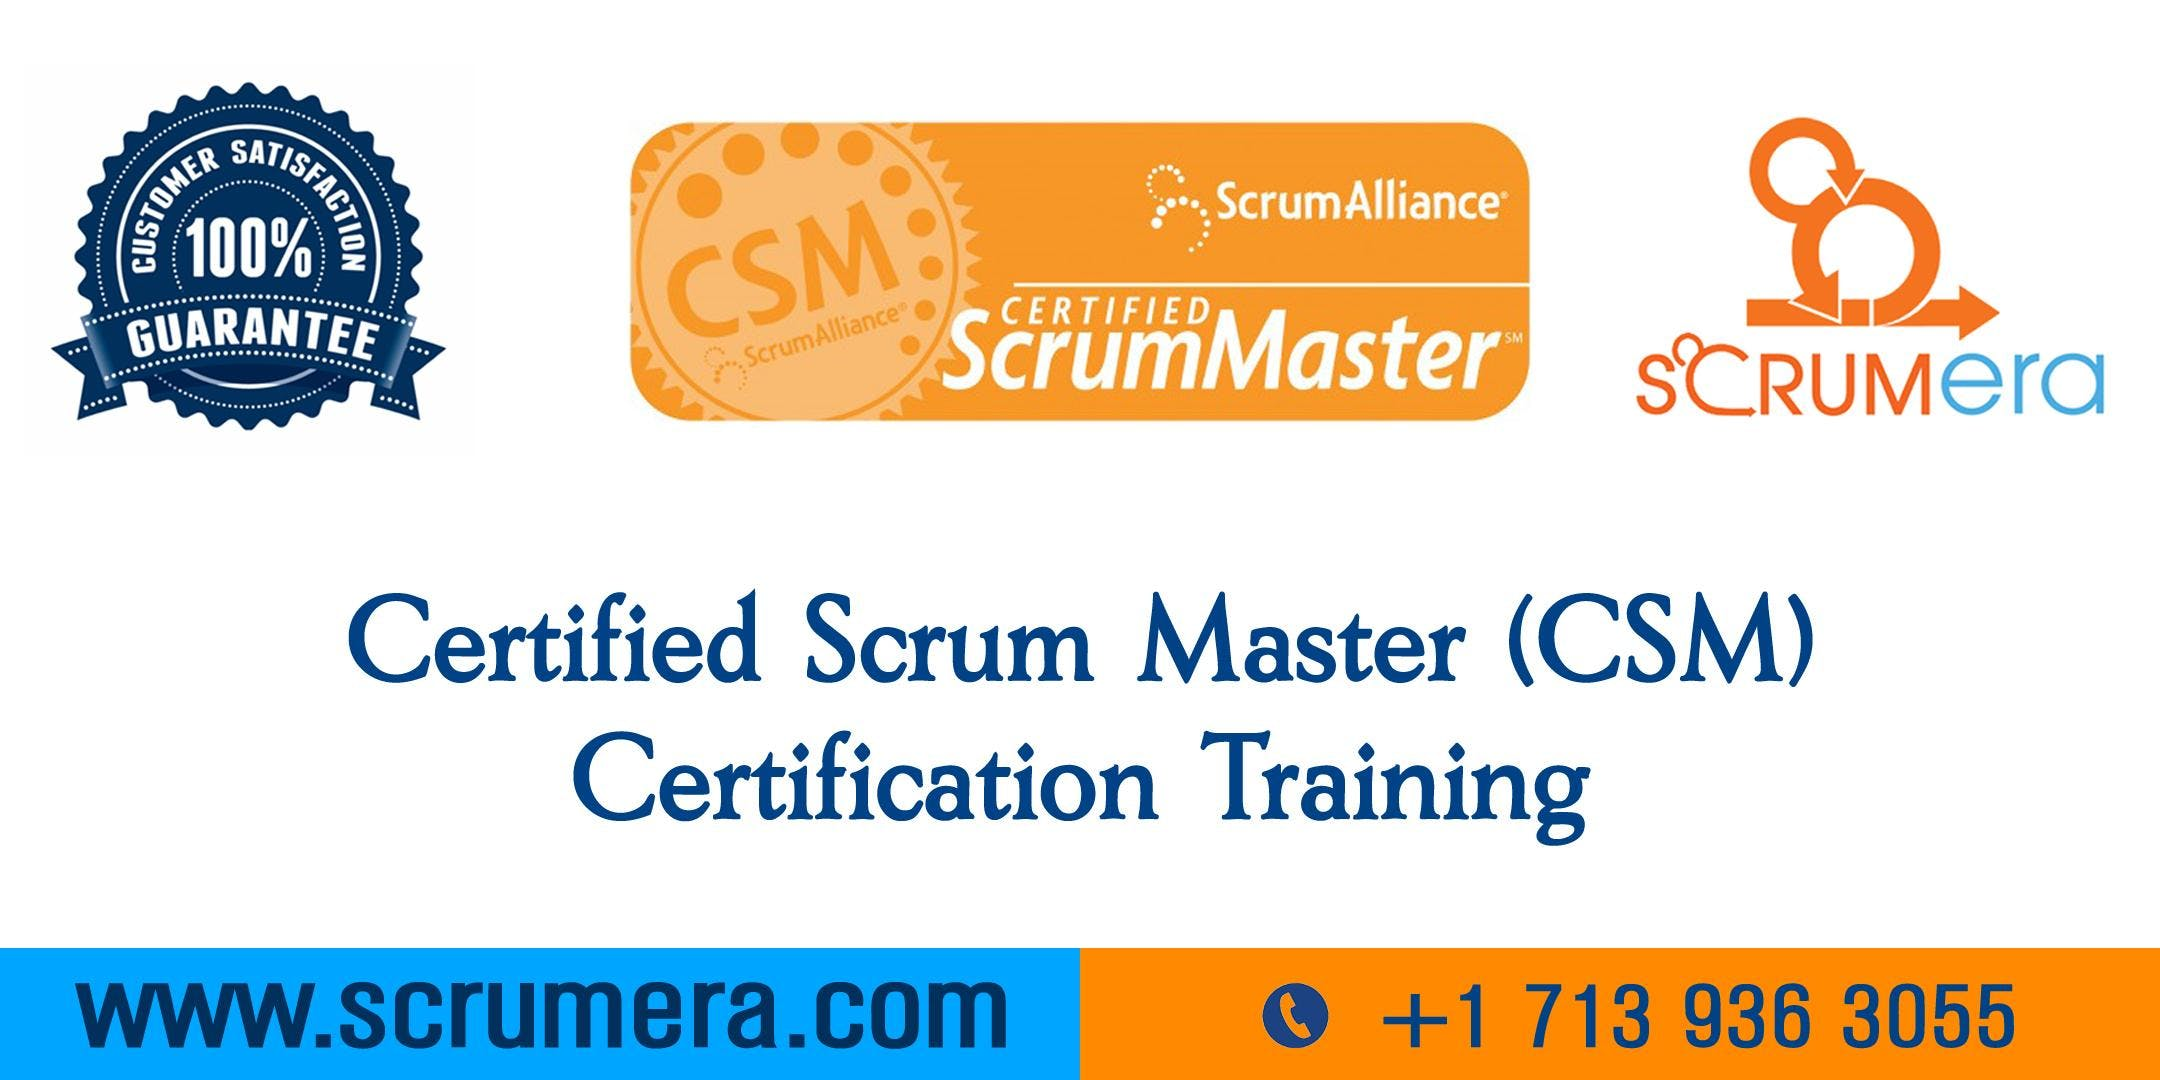 Scrum Master Certification | CSM Training | CSM Certification Workshop | Certified Scrum Master (CSM) Training in Louisville, KY | ScrumERA